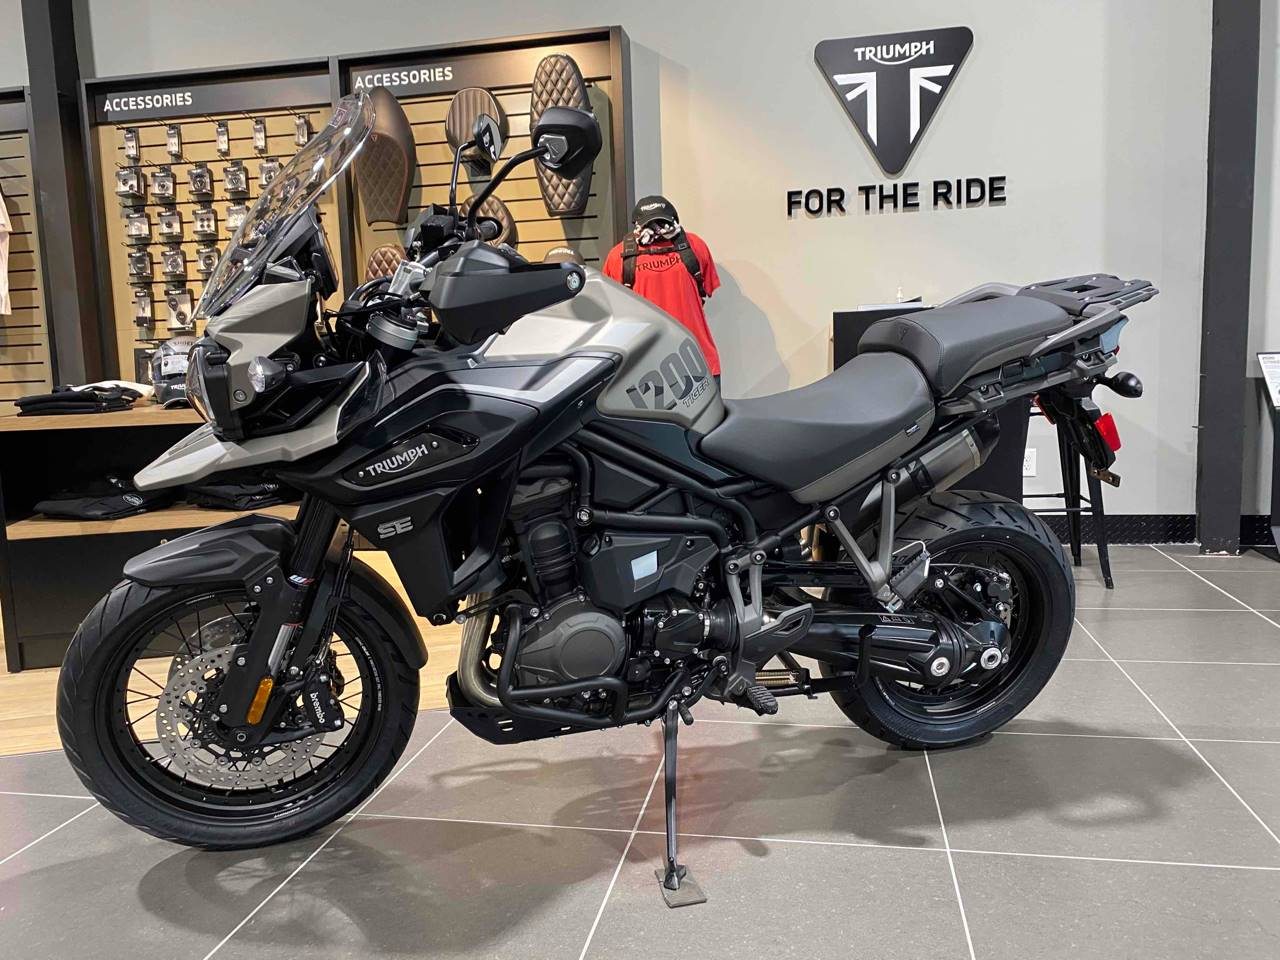 2020 Triumph TIGER 1200 XC in Mooresville, North Carolina - Photo 1